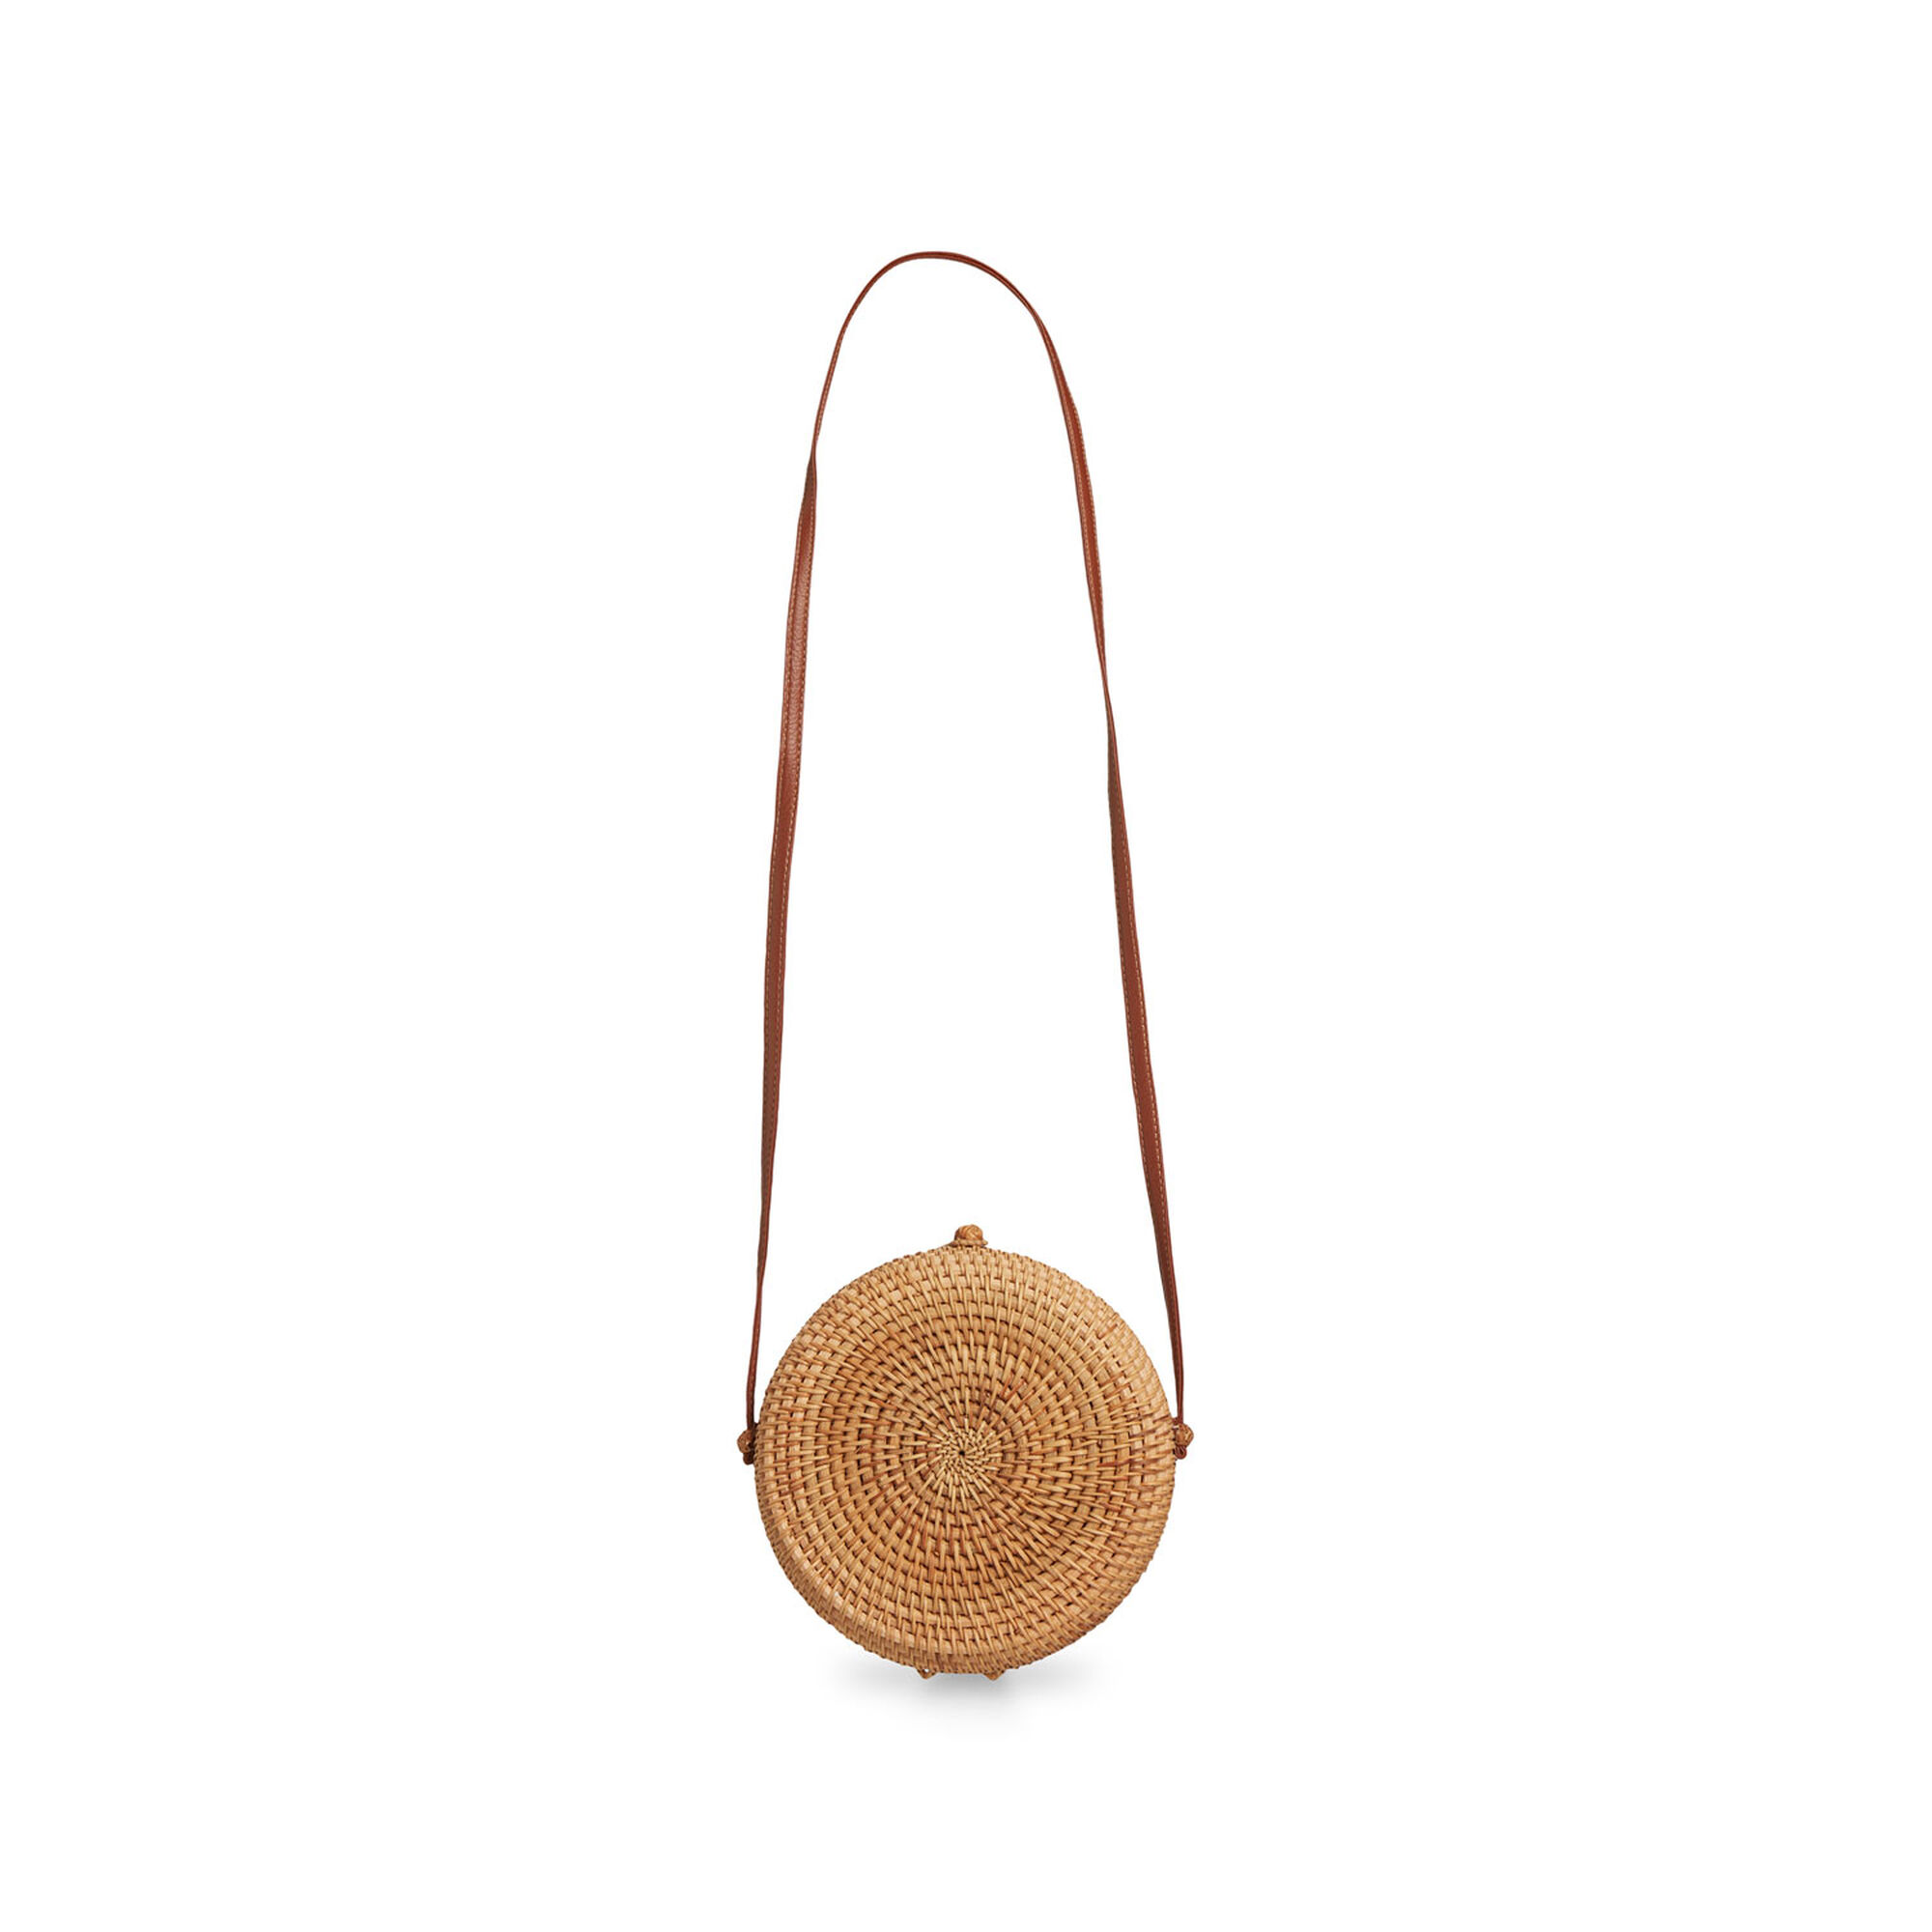 RANDA BAG, Natural, hi-res